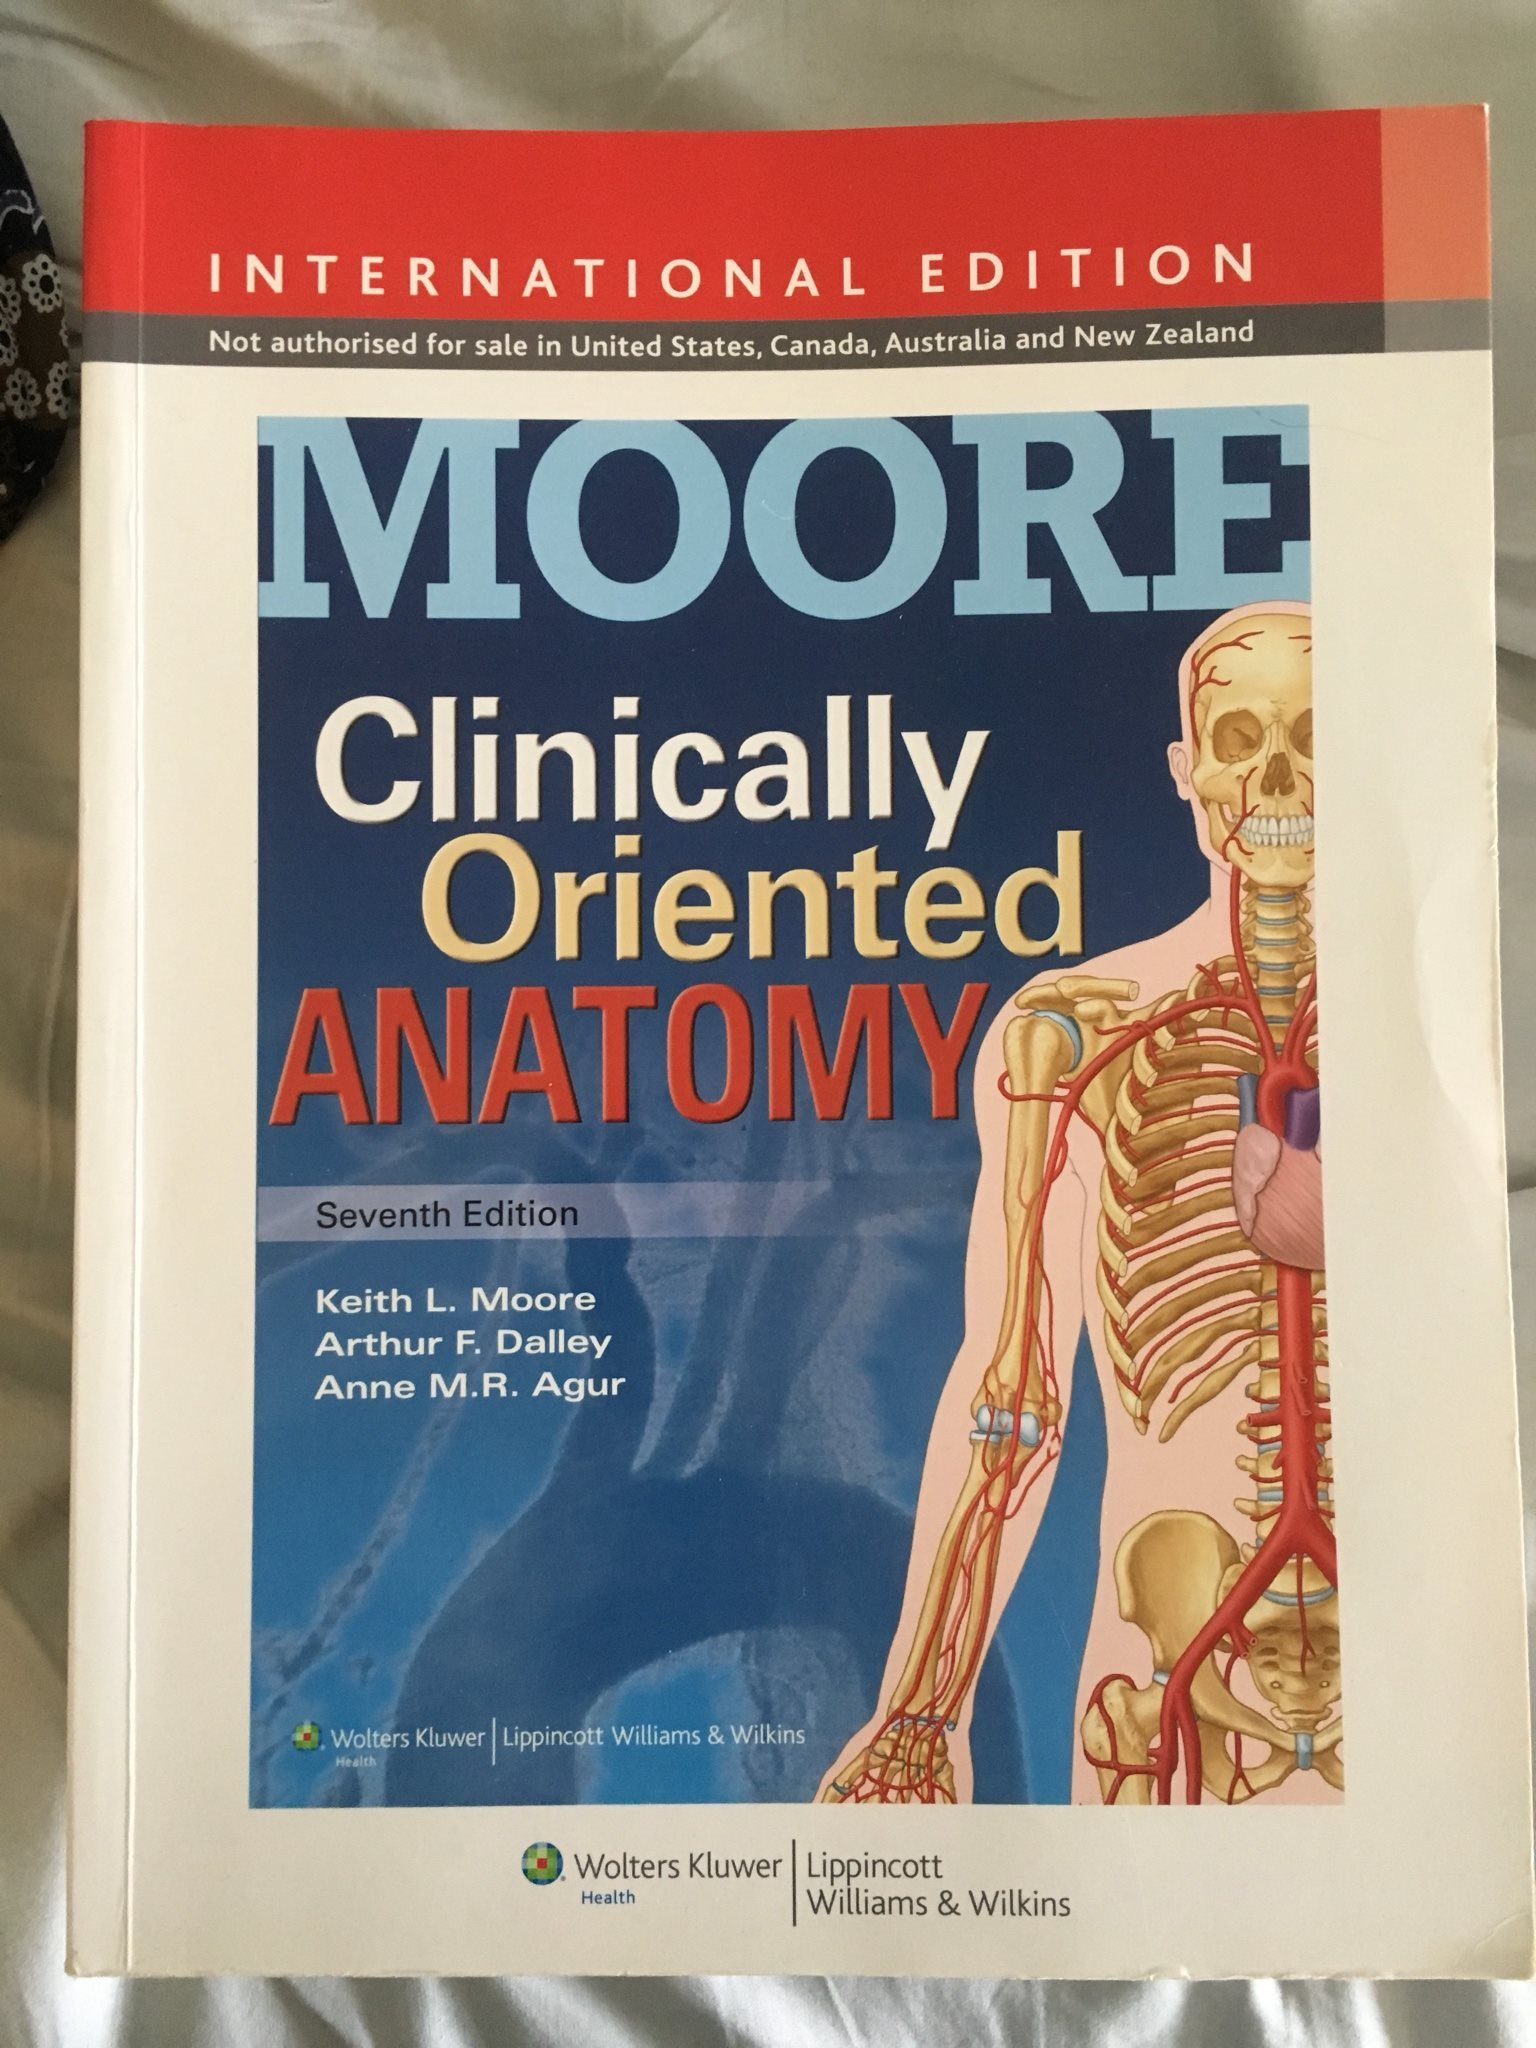 MOORE Clinically Oriented Anatomy, 7th edition på Tradera.com - Medicin